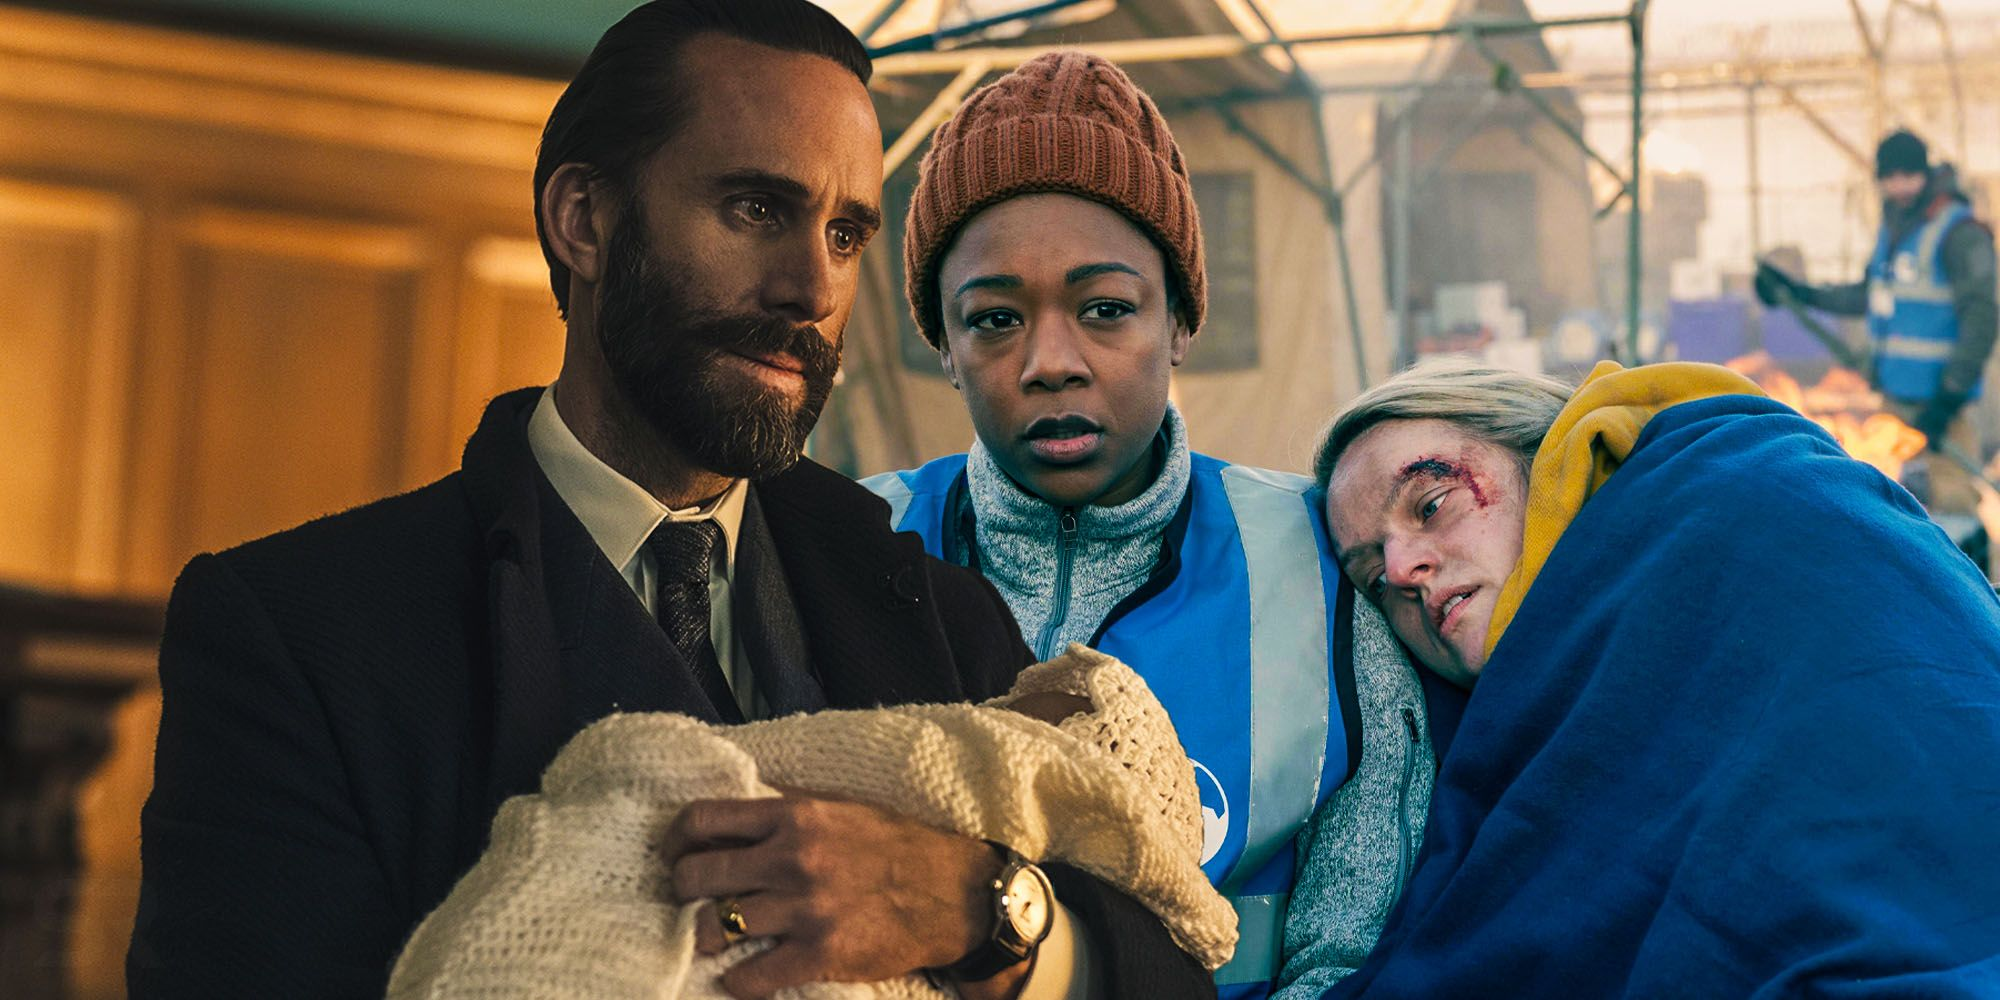 Handmaid's Tale: How Bad Is The World's Population Crisis (Outside Gilead)?